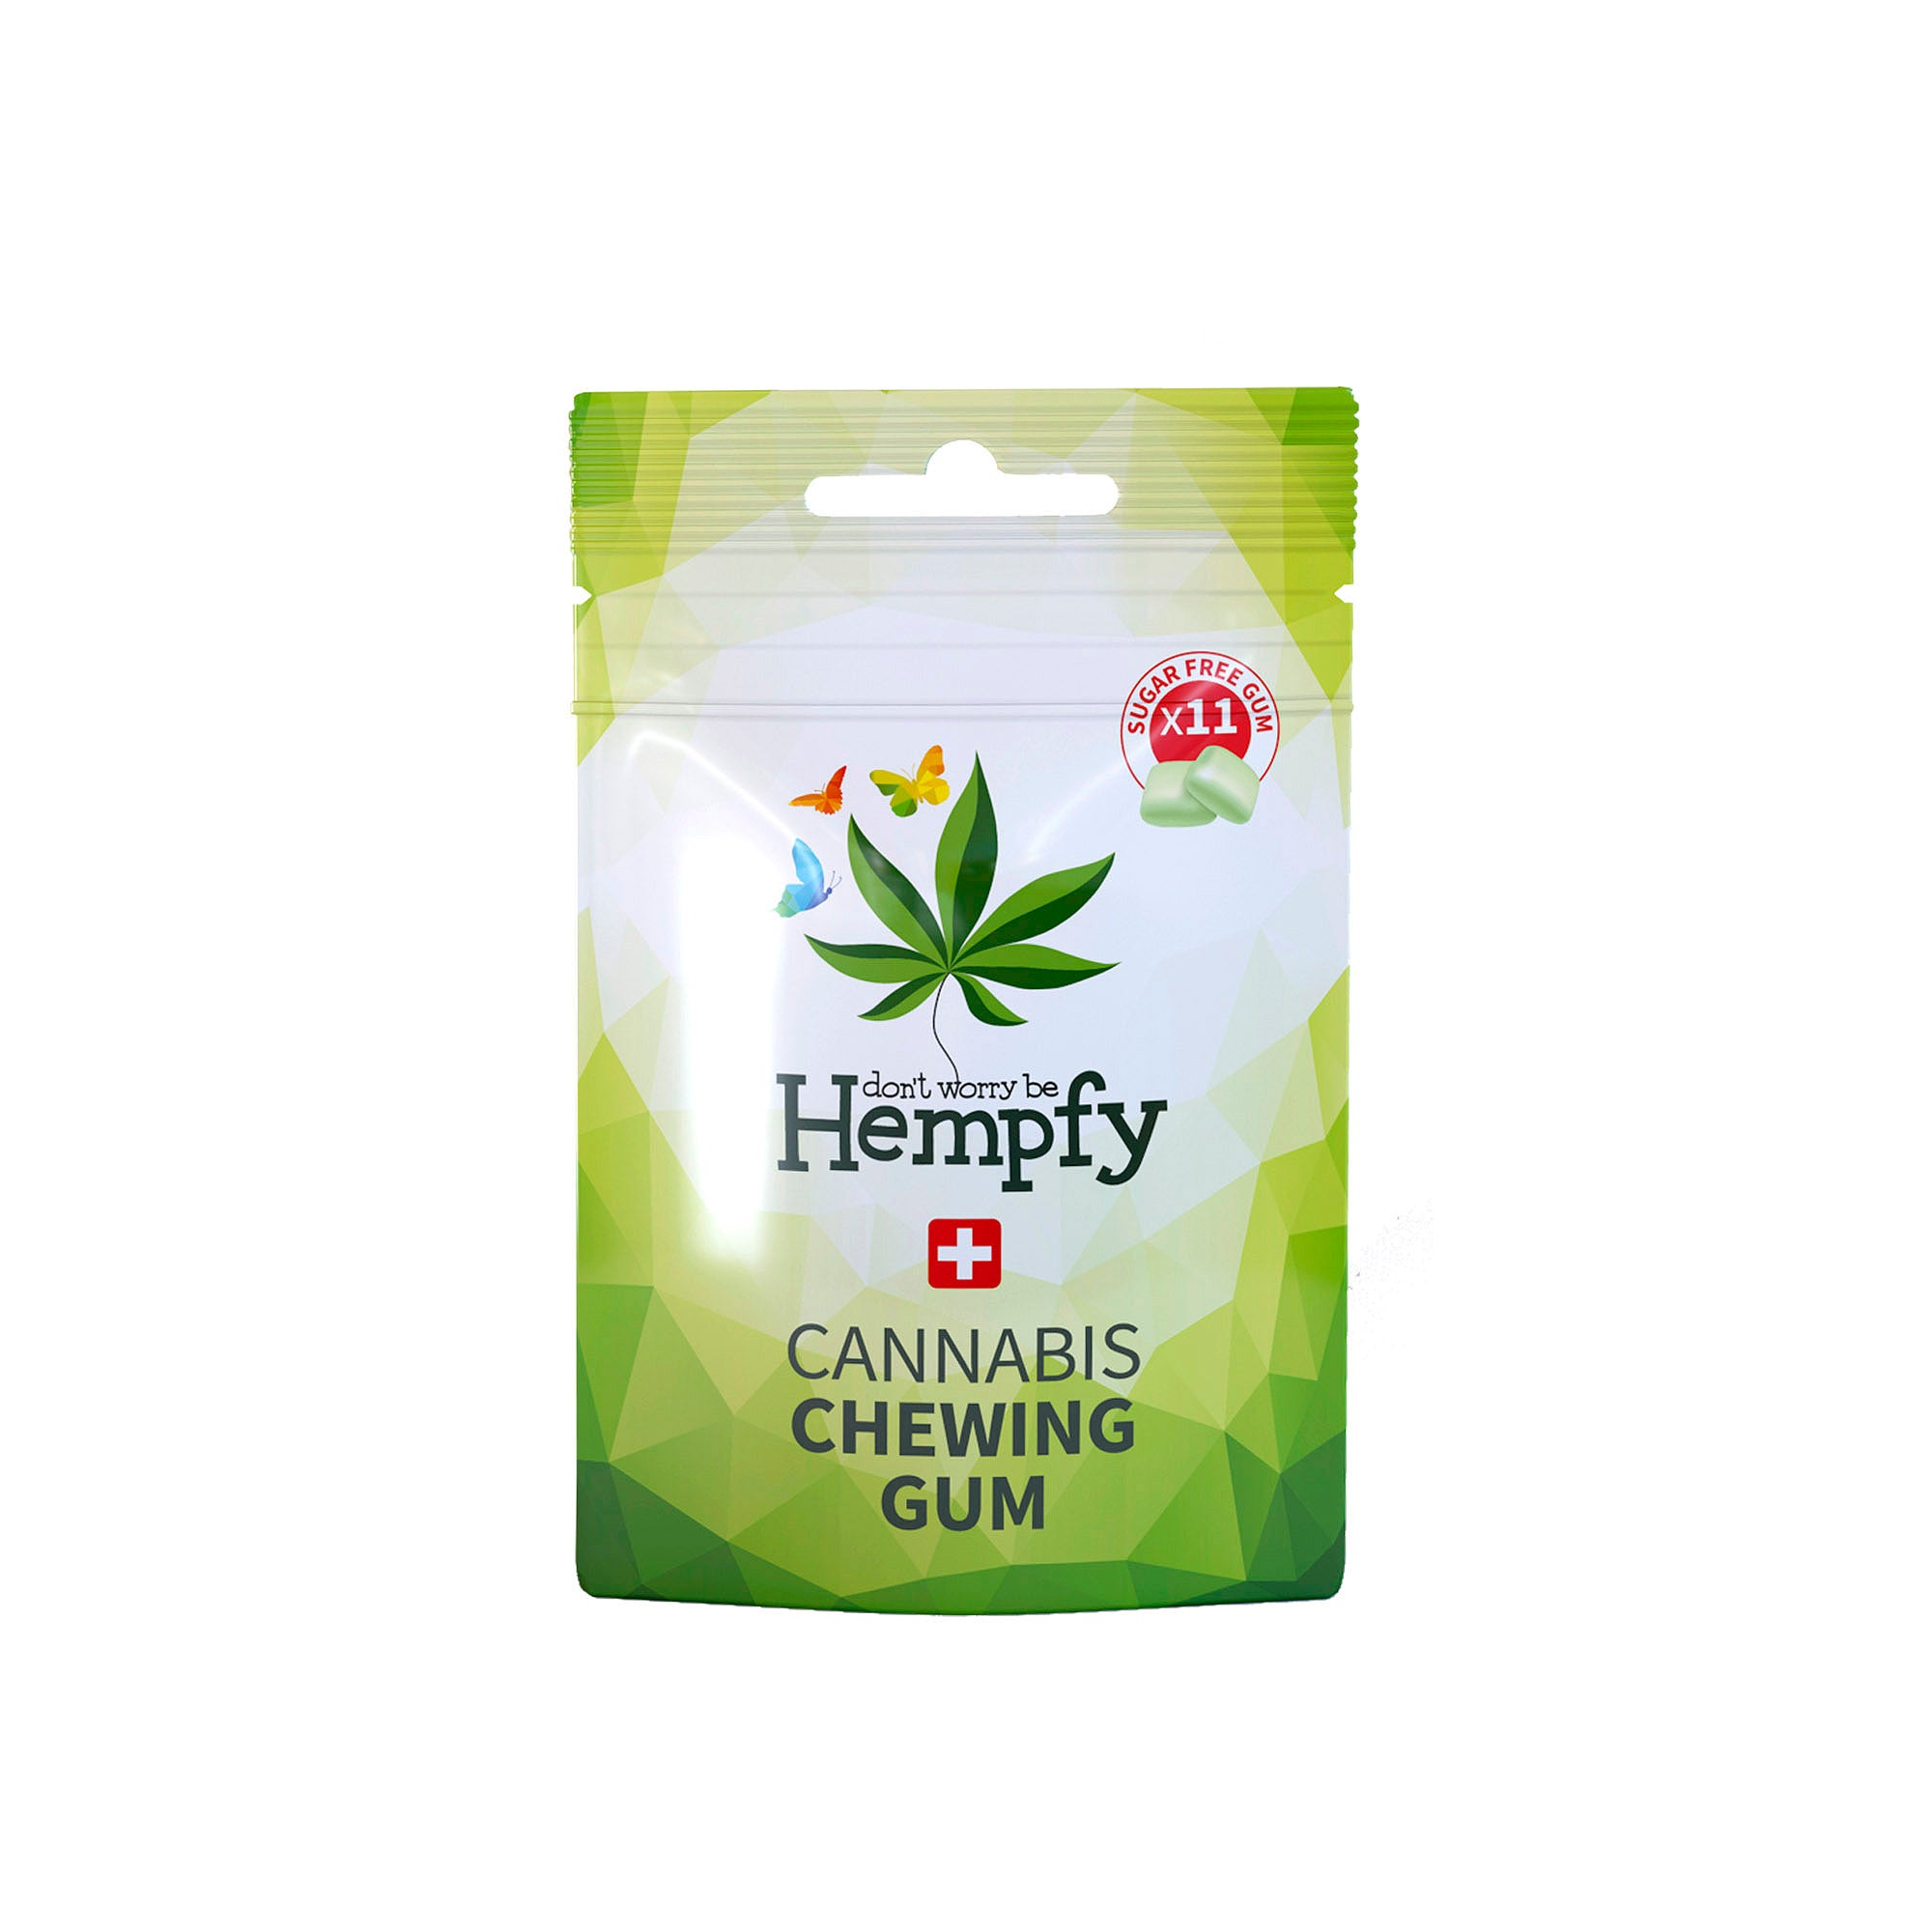 Hempfy chewing gum, box of 14 pouches